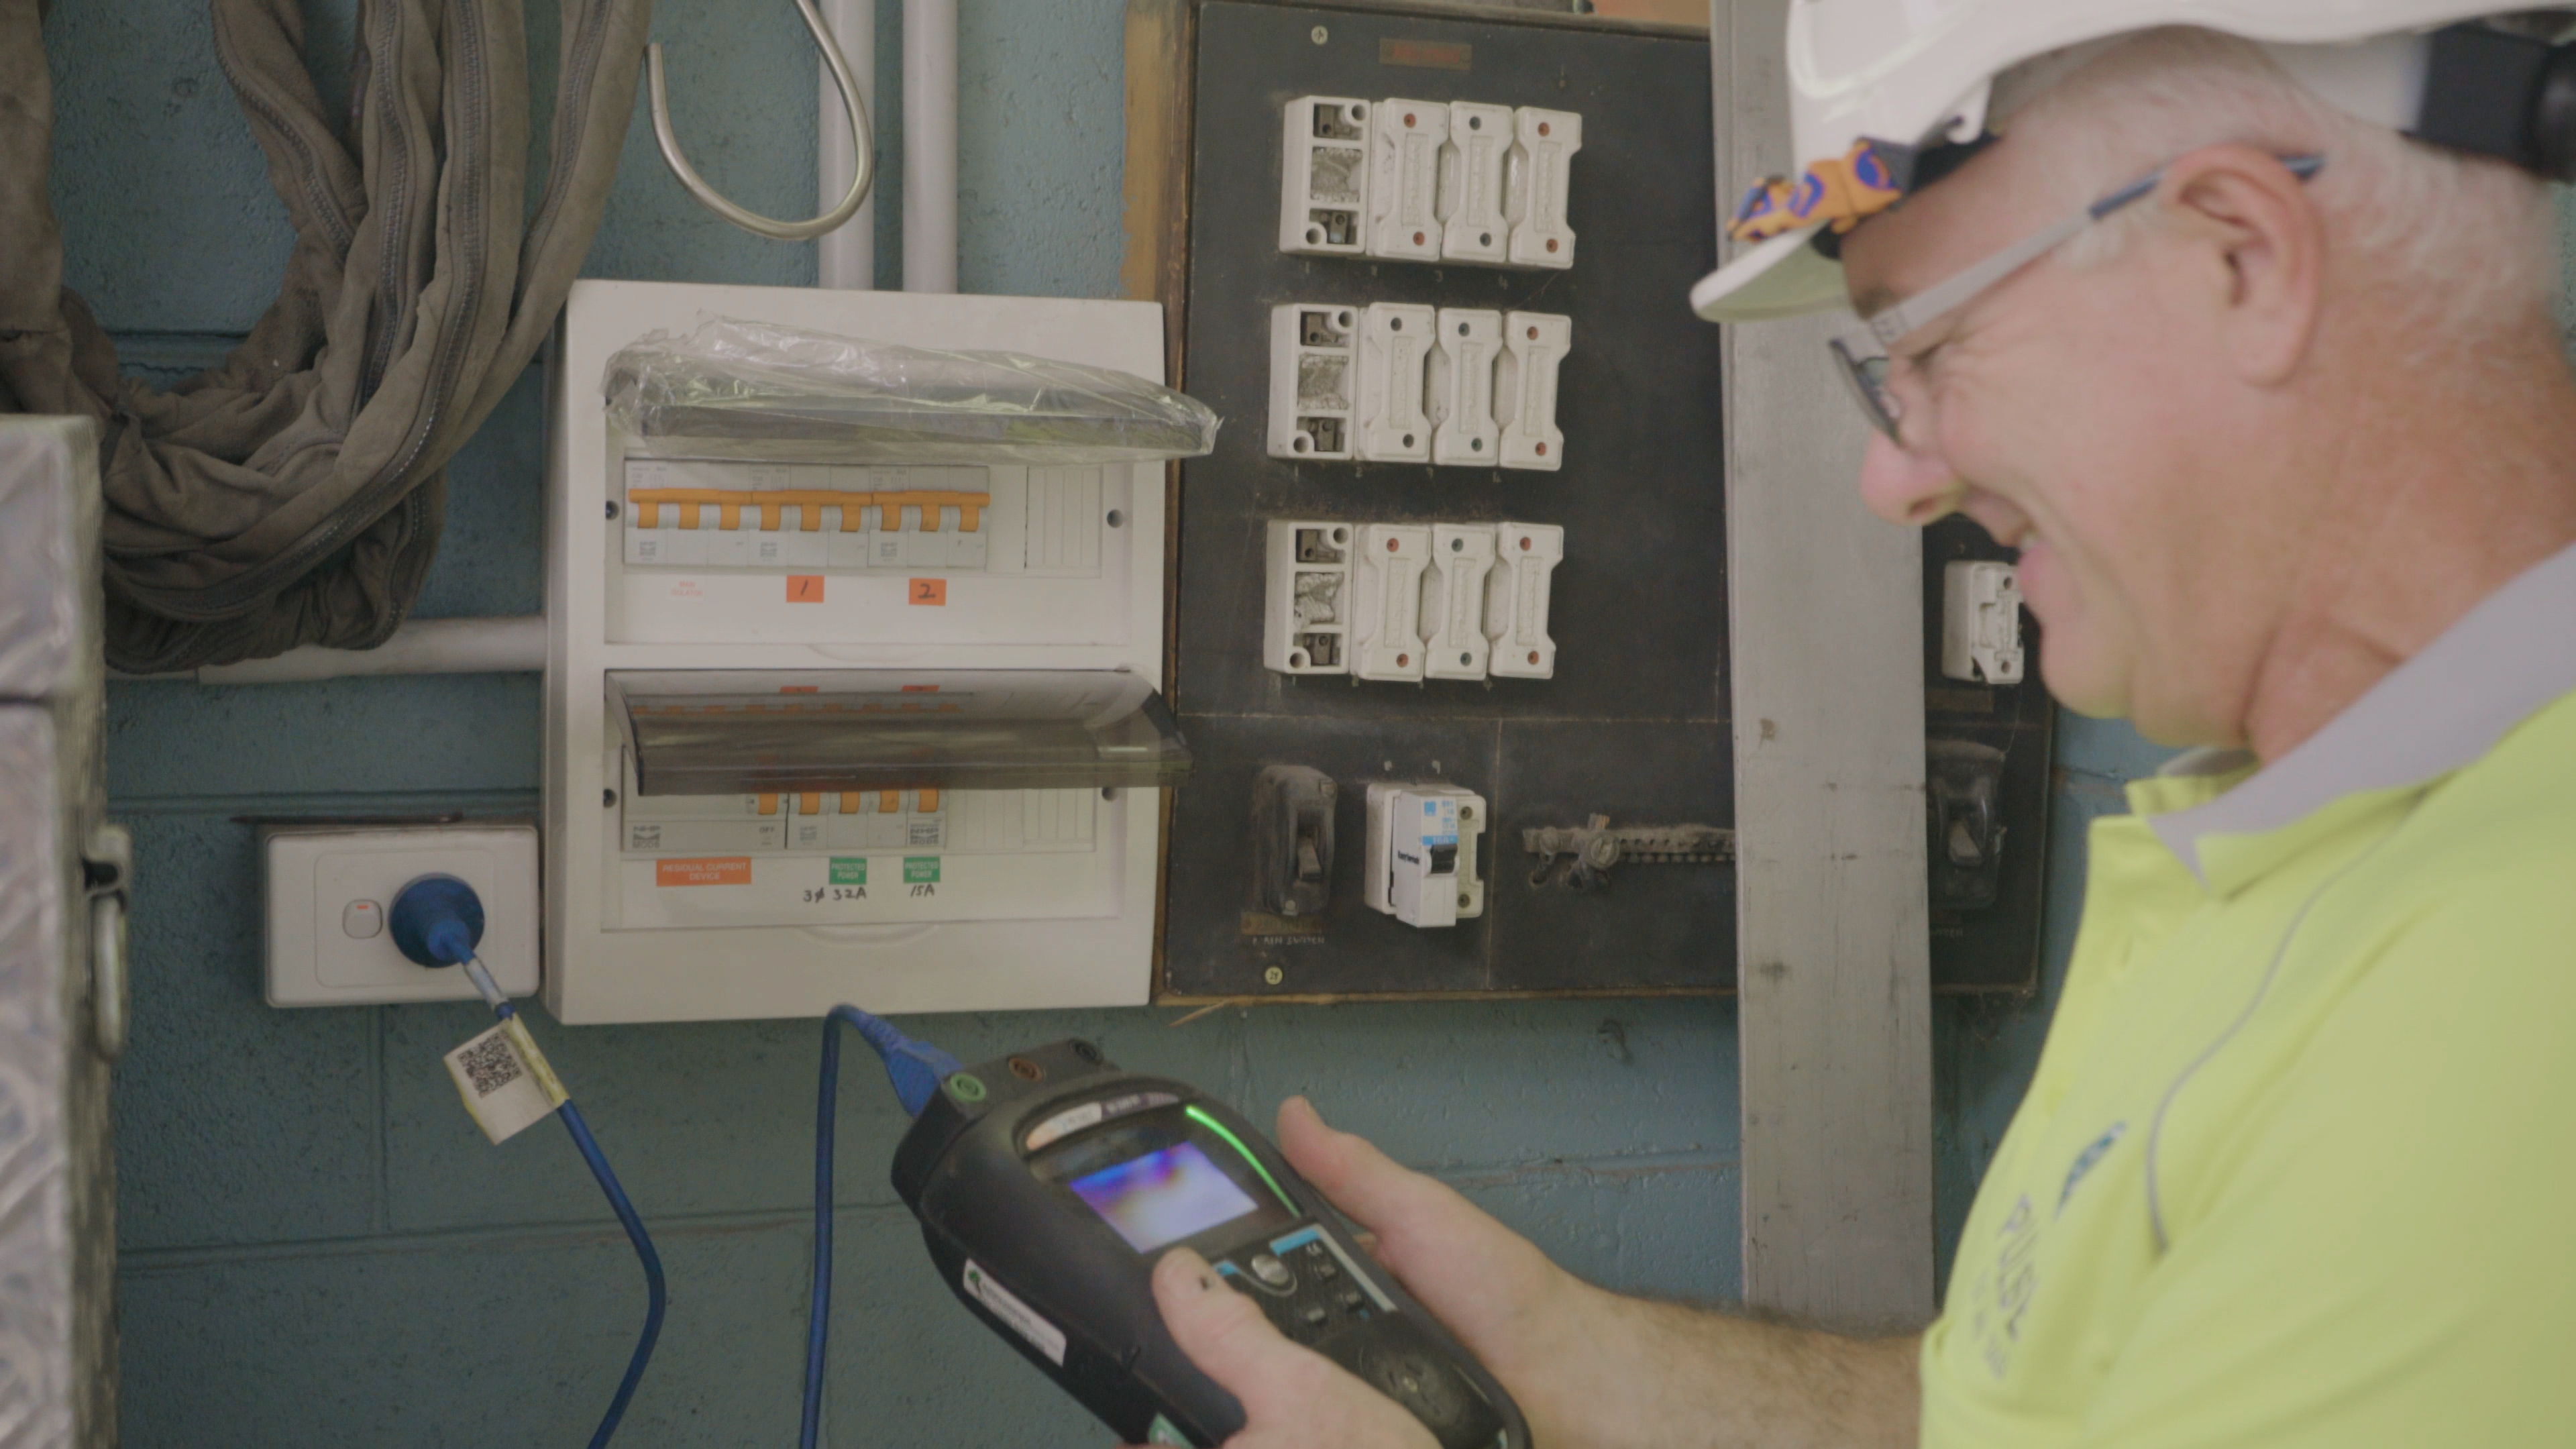 pulse-test-and-tag-franchises-available-electrical-test-and-tag-service-6